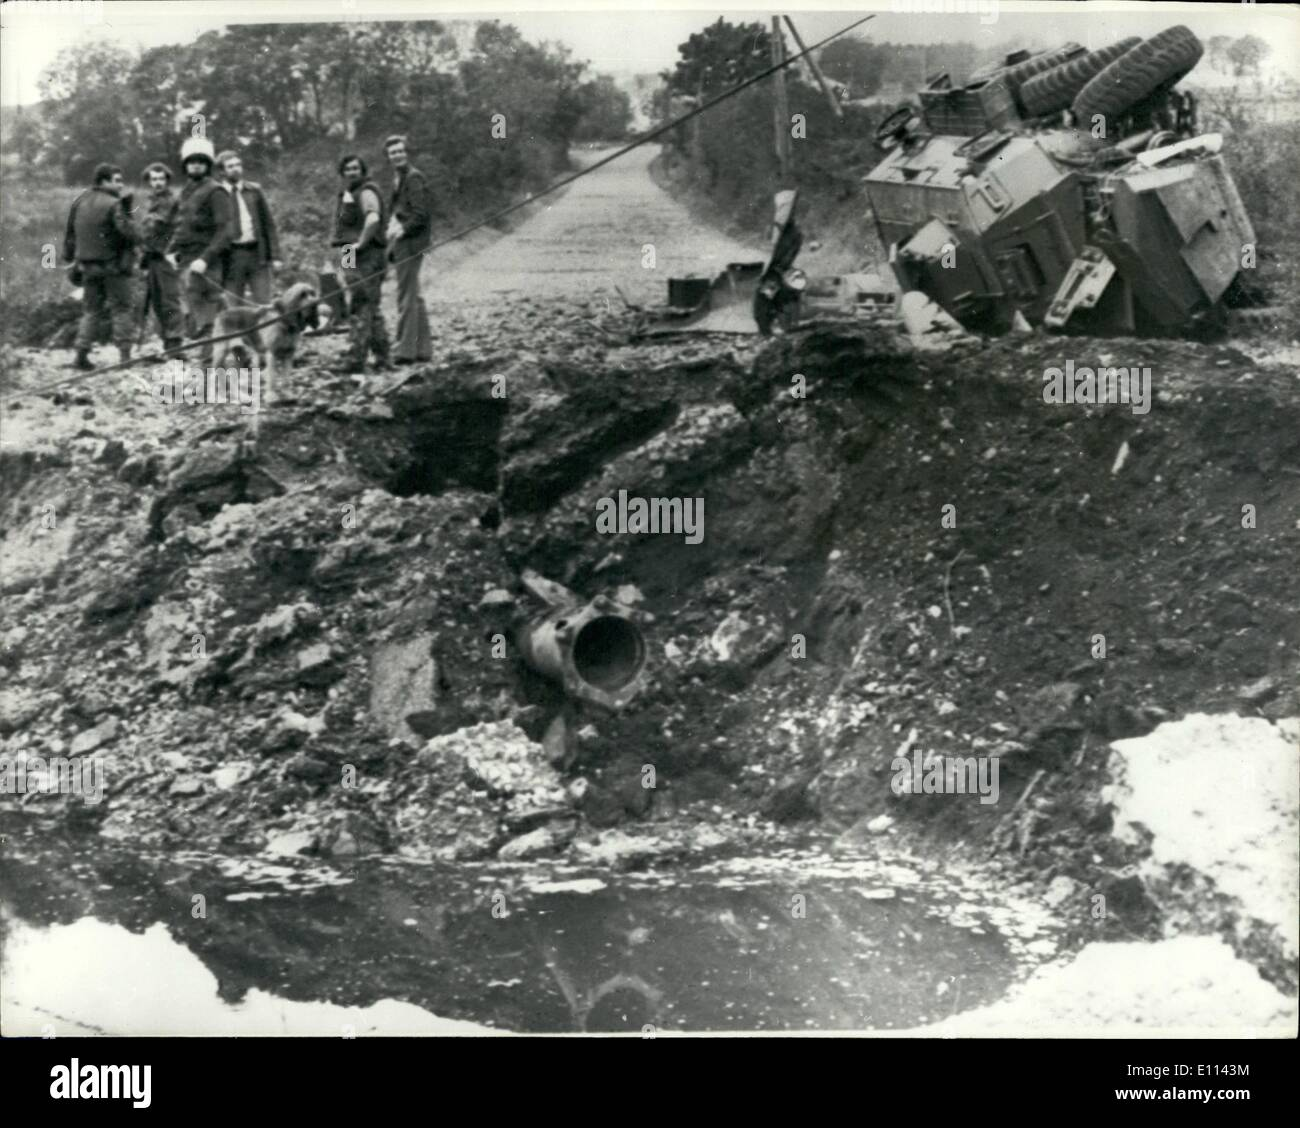 Oct. 10, 1975 - A BRITISH SOLDIER IS KILLED WHEN A BOMB BLOWS UP AN ARMY SARACEN IN ARMAGH: A radio-exploded 400-lb bomb blew an Army Saracen on its side in open country four miles from Crossmaglen, South Ammagh yesterday, killing one soldier and seriously injuring two others and a policeman in the six-man military patrol. The provisional IRA promptly claimed responsibility. Photo shows the overturned Arm Saracen lying on the rim of a huge crater after the 400-lb bomb exploded on a road four miles from Crossmaglen, South Armagh, yesterday. - Stock Image